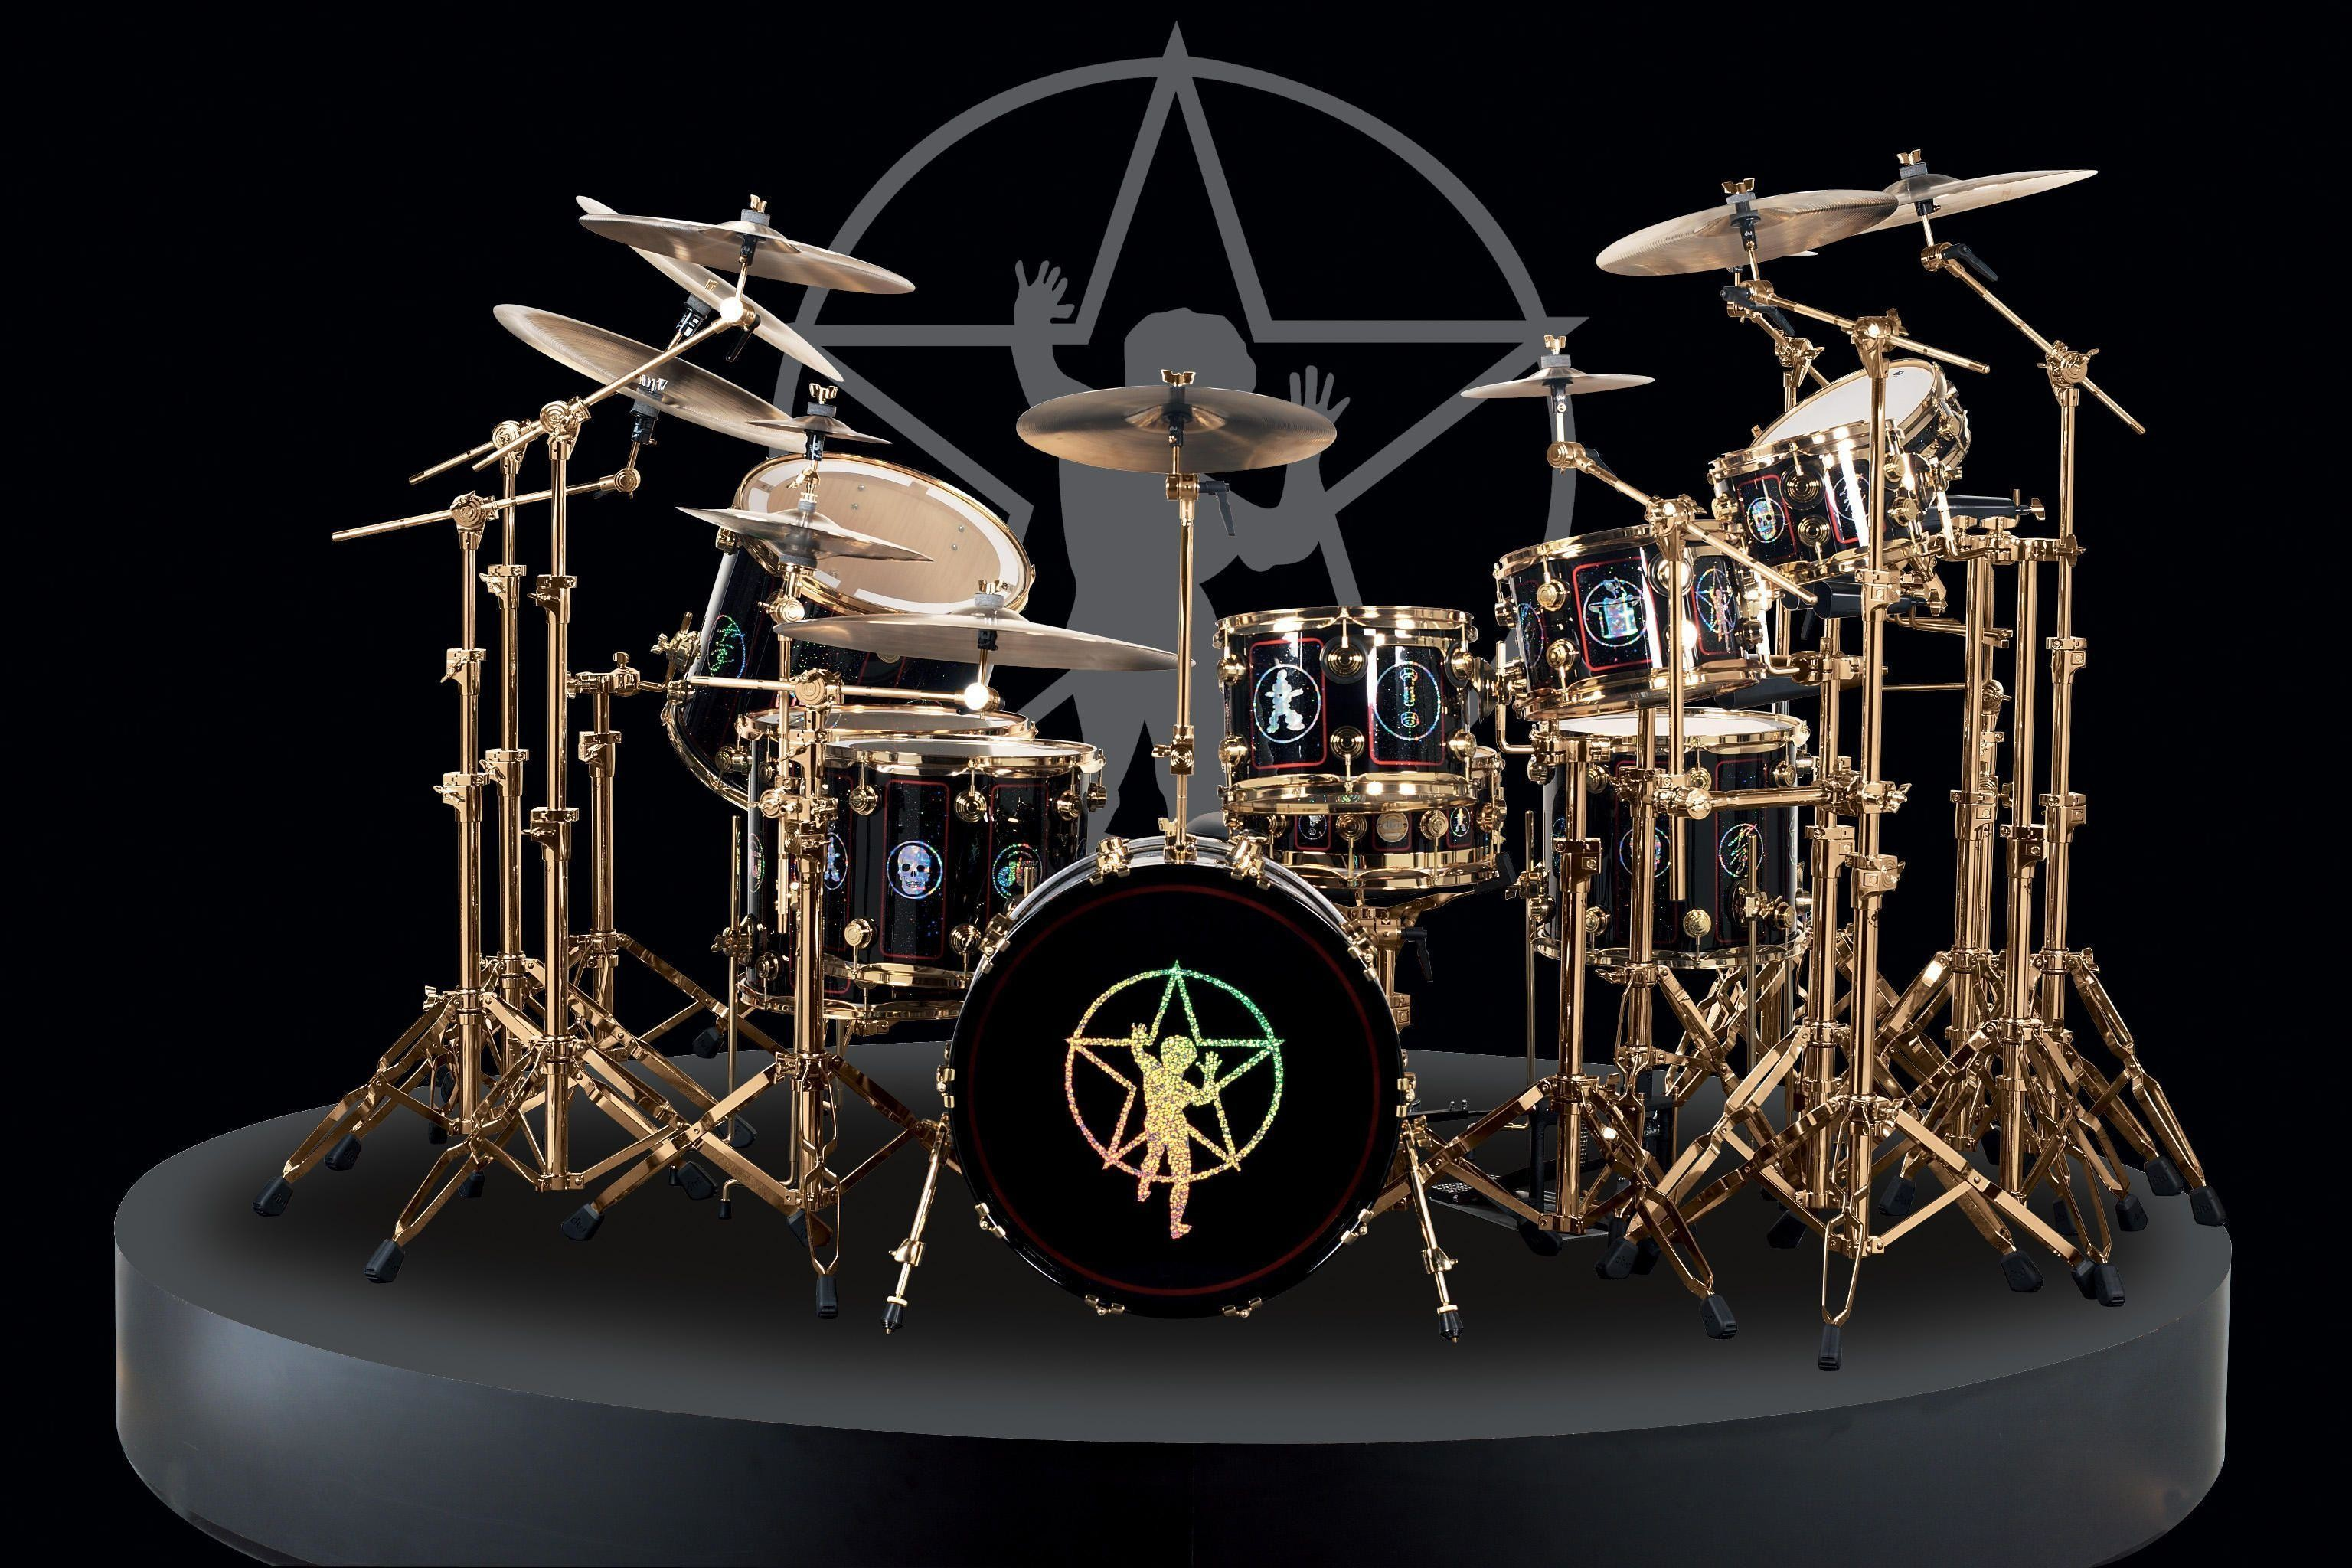 Res: 3072x2048, 10 Drums Wallpapers | Drums Backgrounds